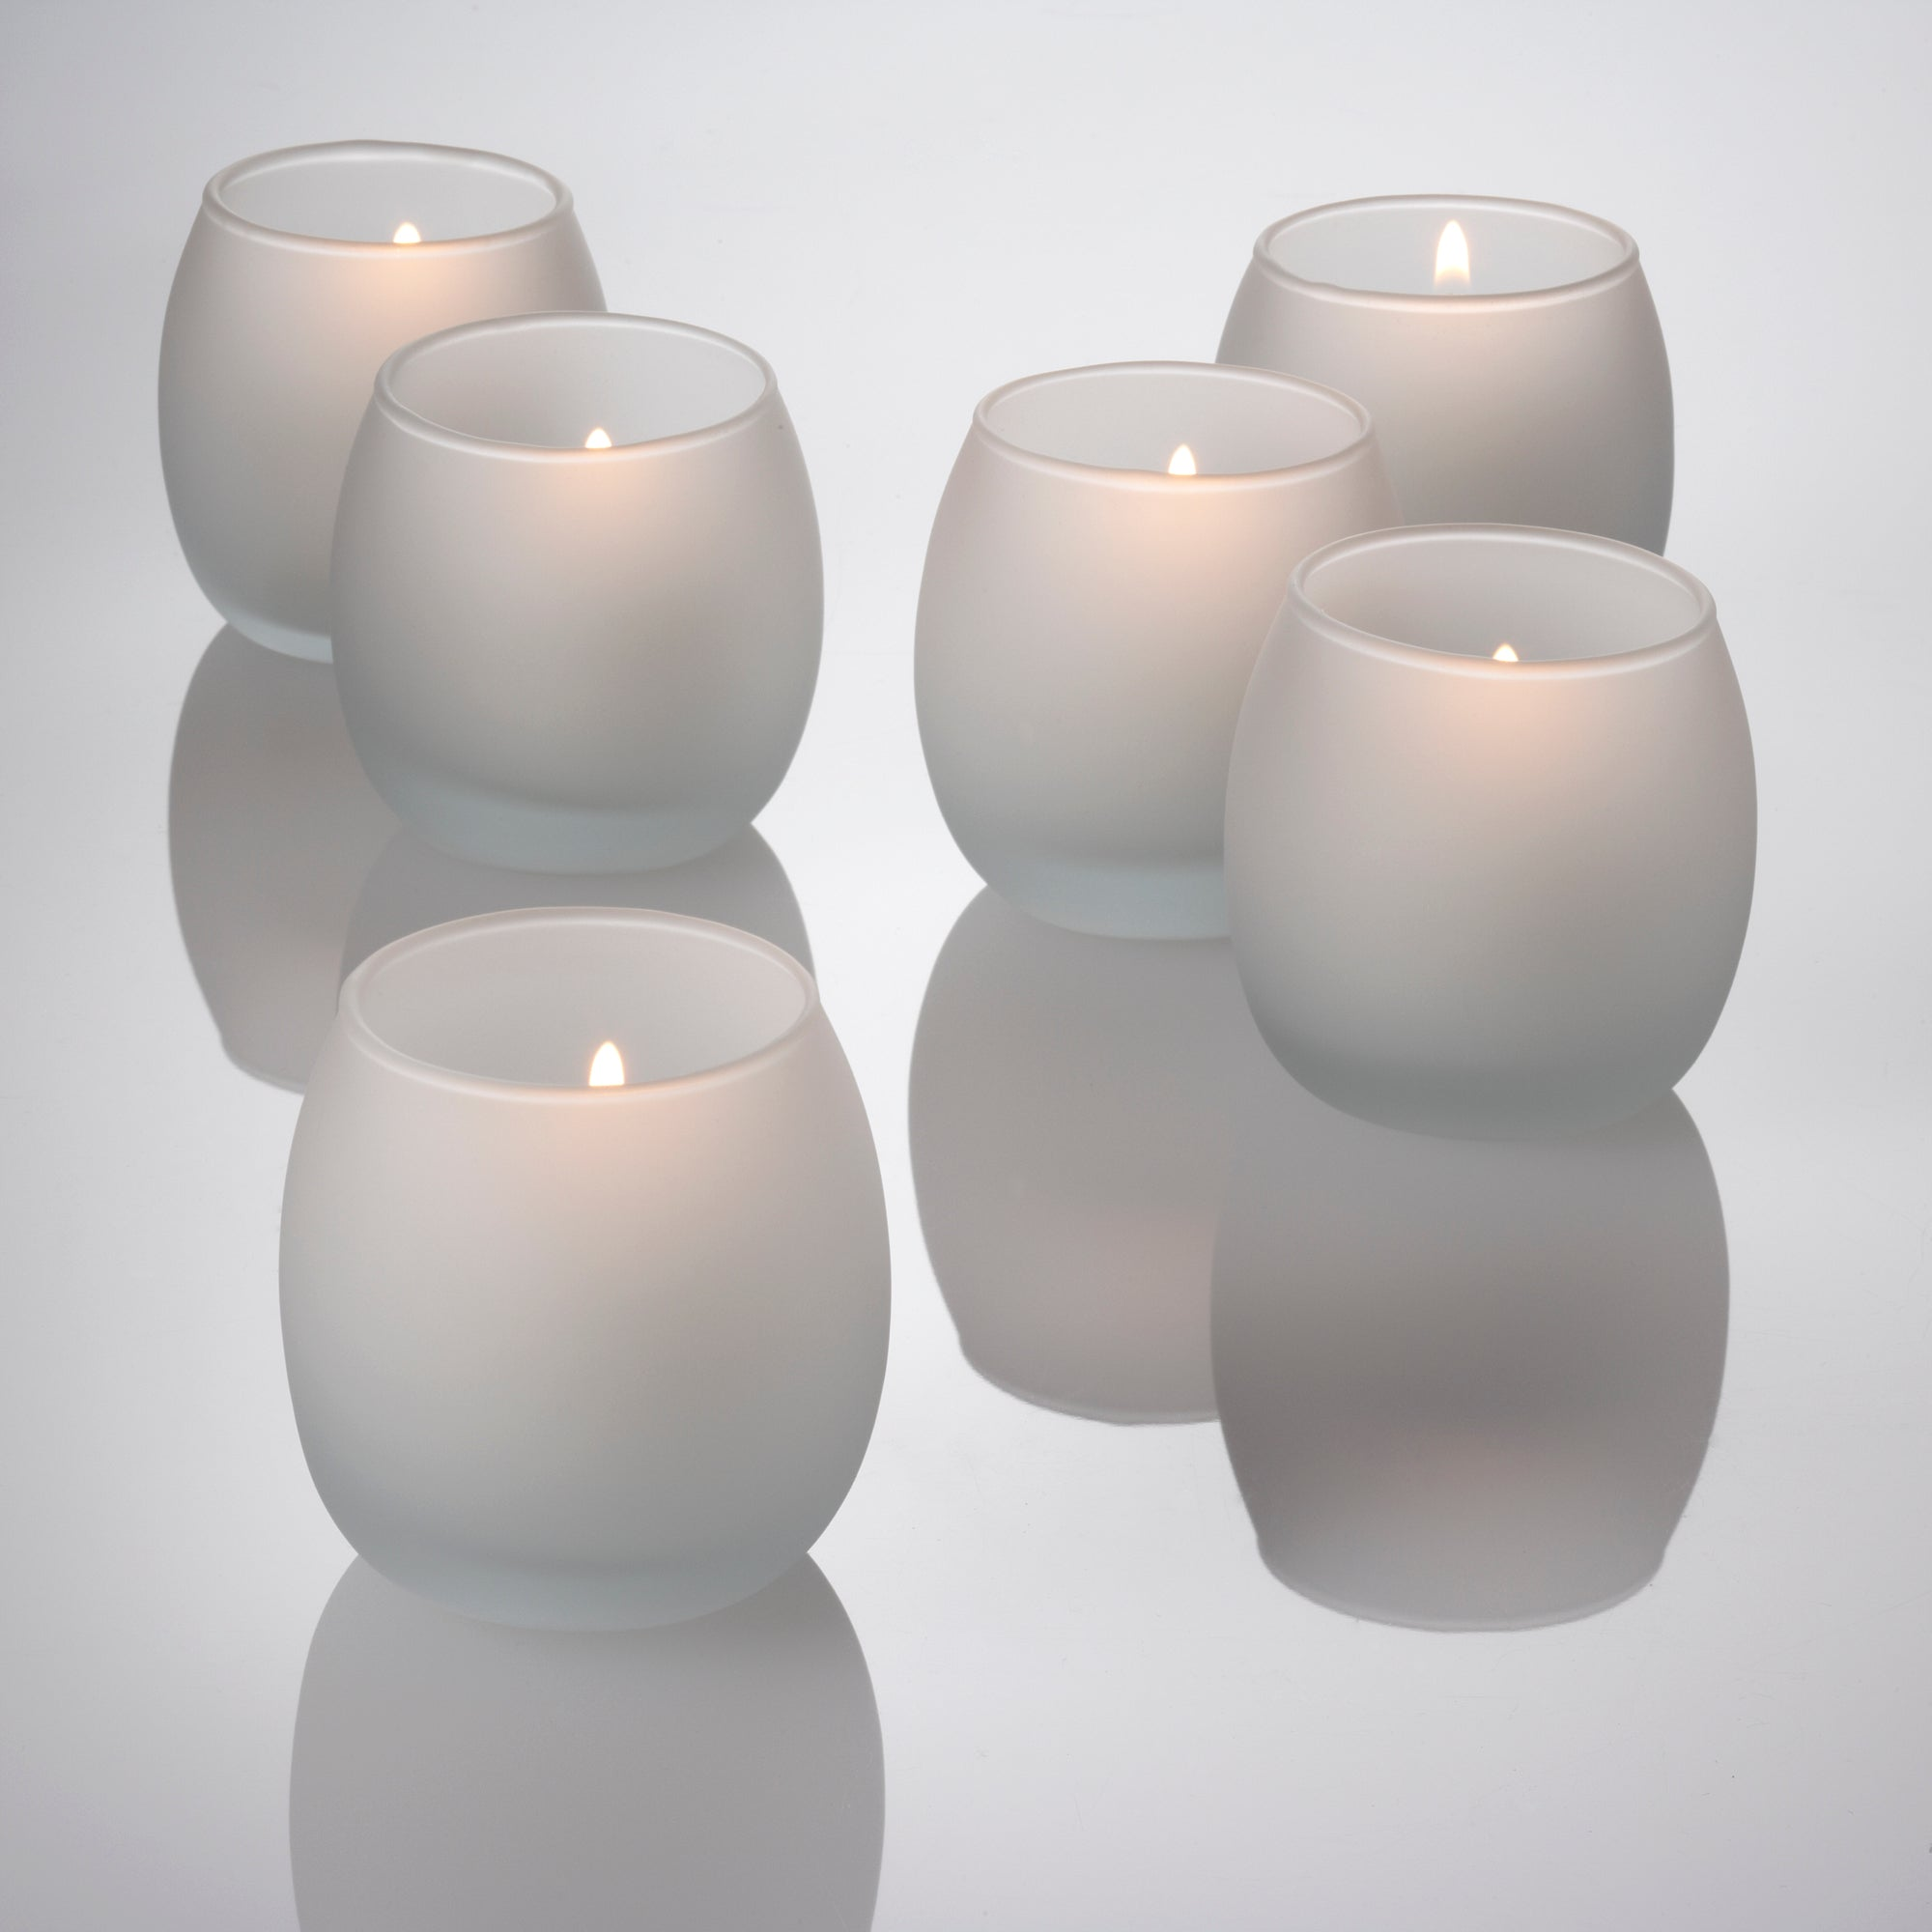 Eastland Petite Hurricane Votive Candle Holder Frosted Set of 72